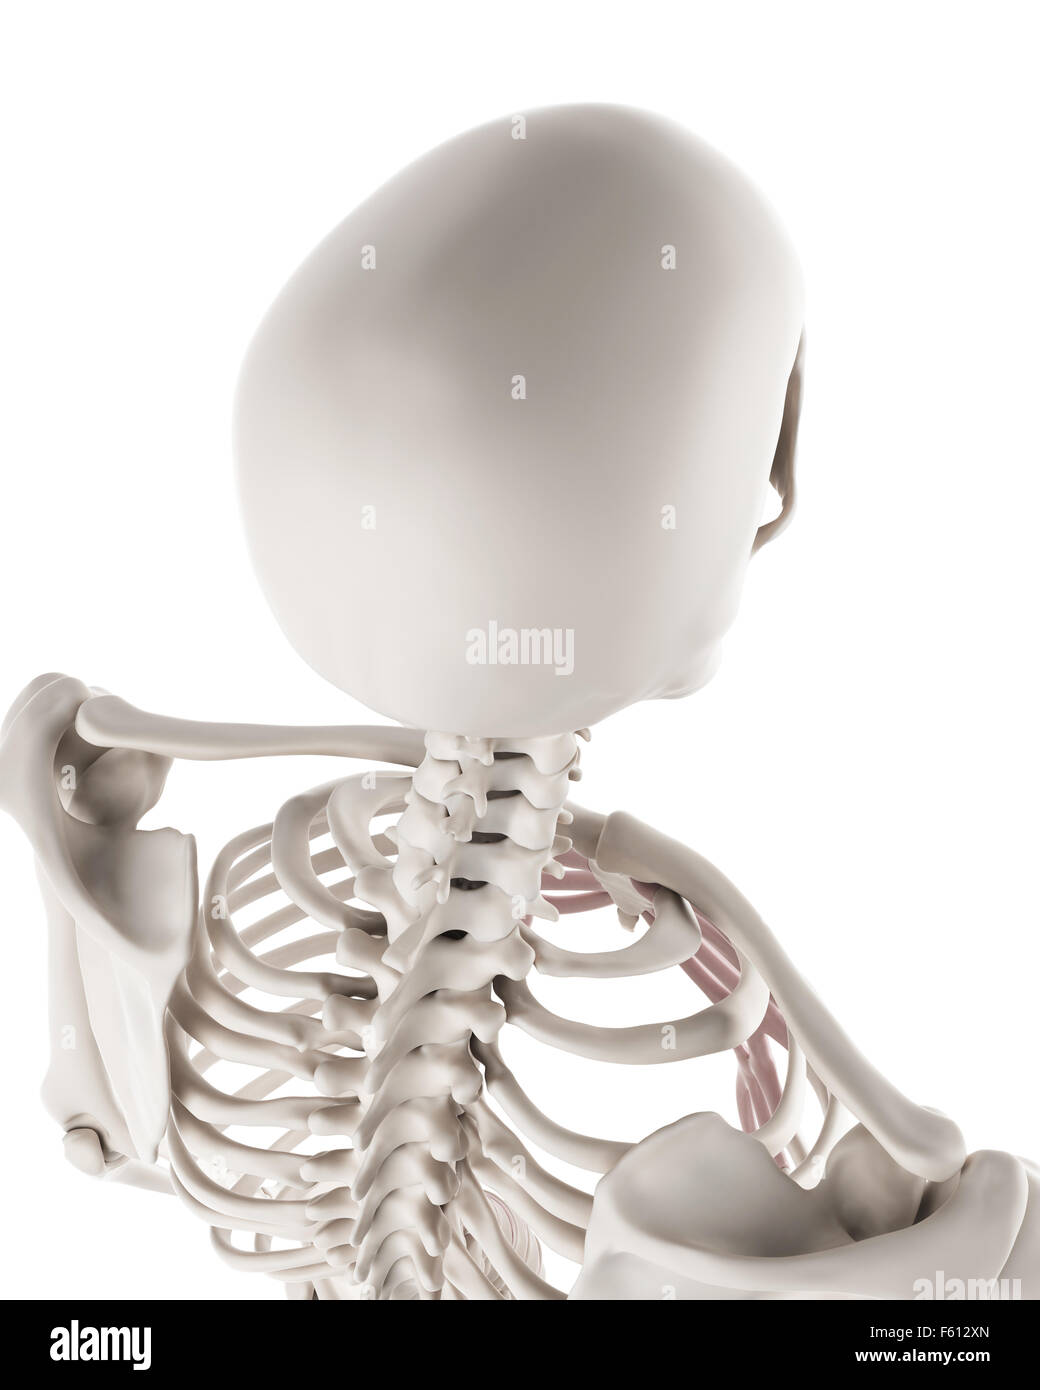 Medically Accurate Illustration Of The Skeletal System The Skull